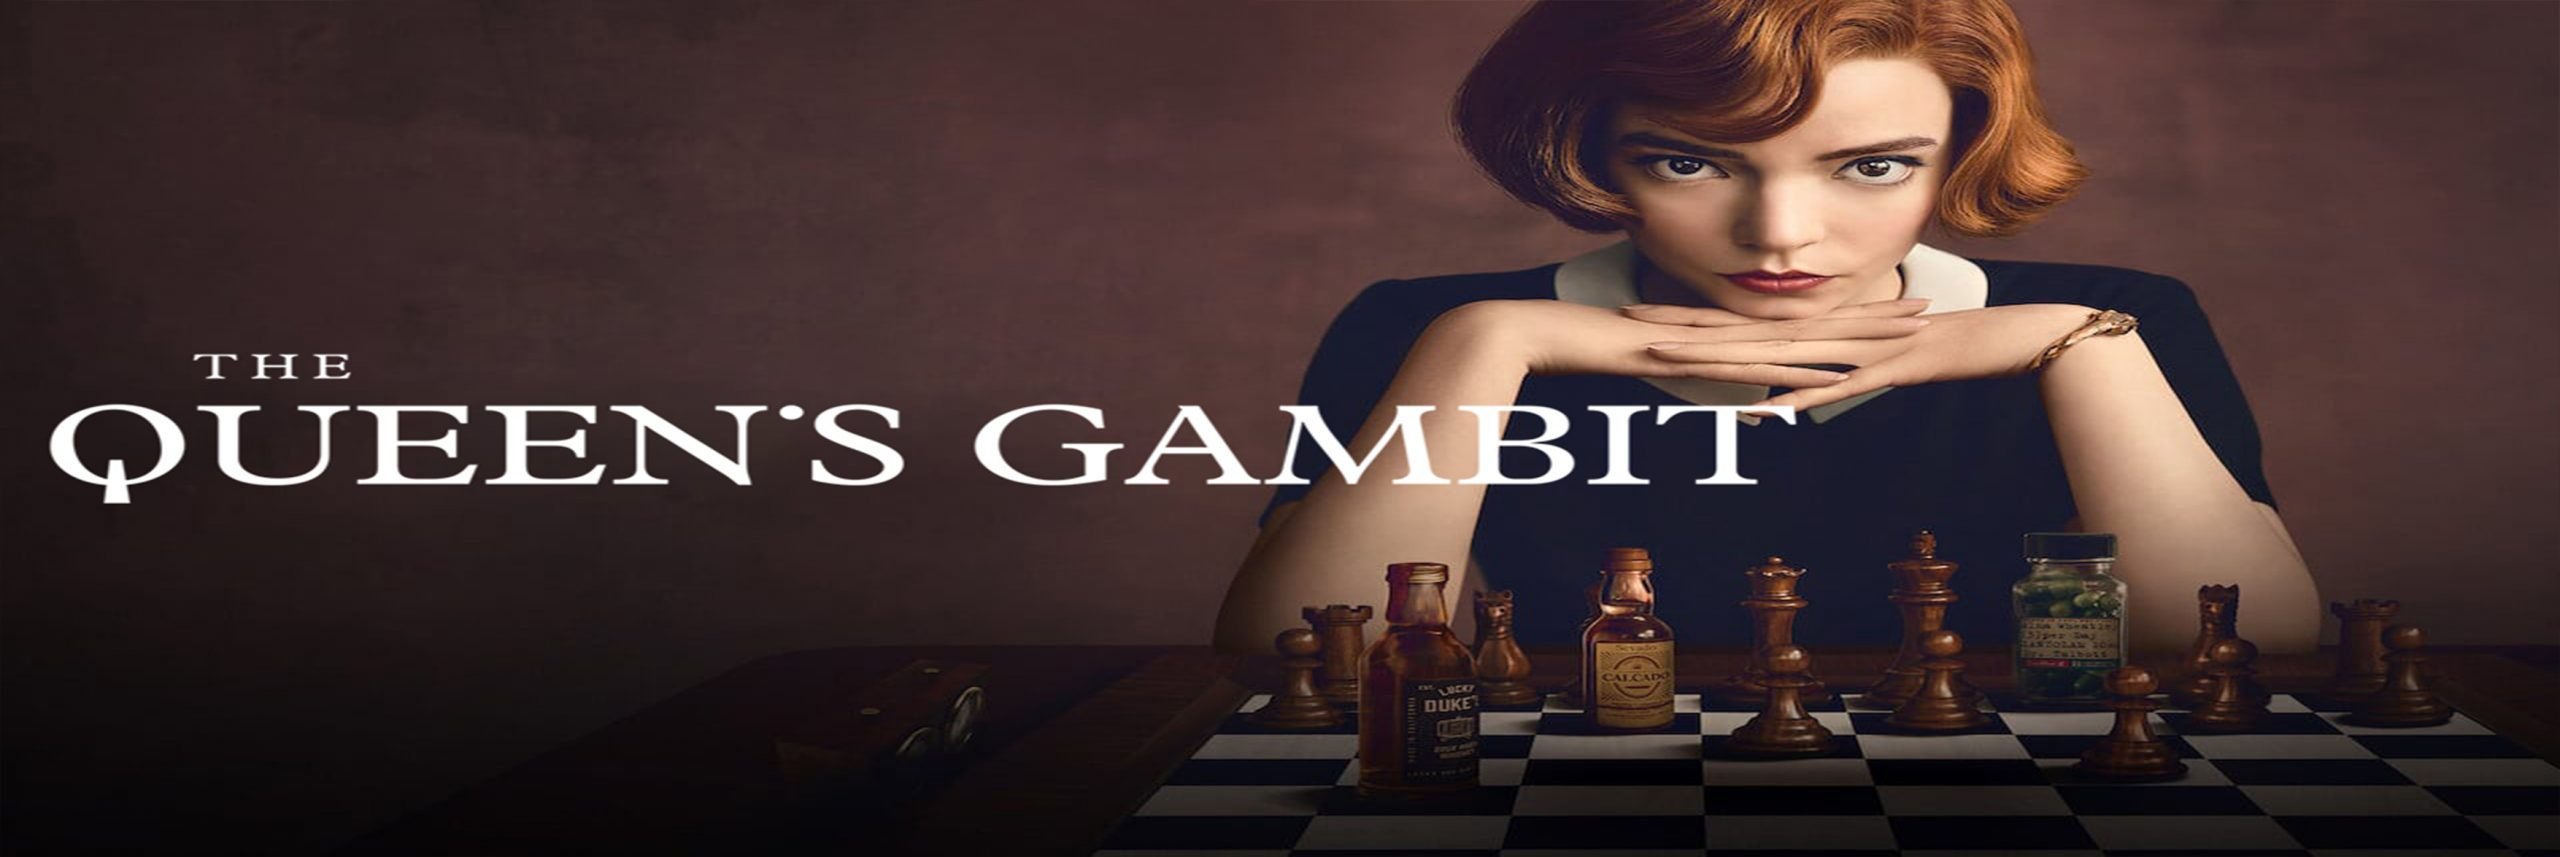 ملکه گامبیت – The Queen's Gambit